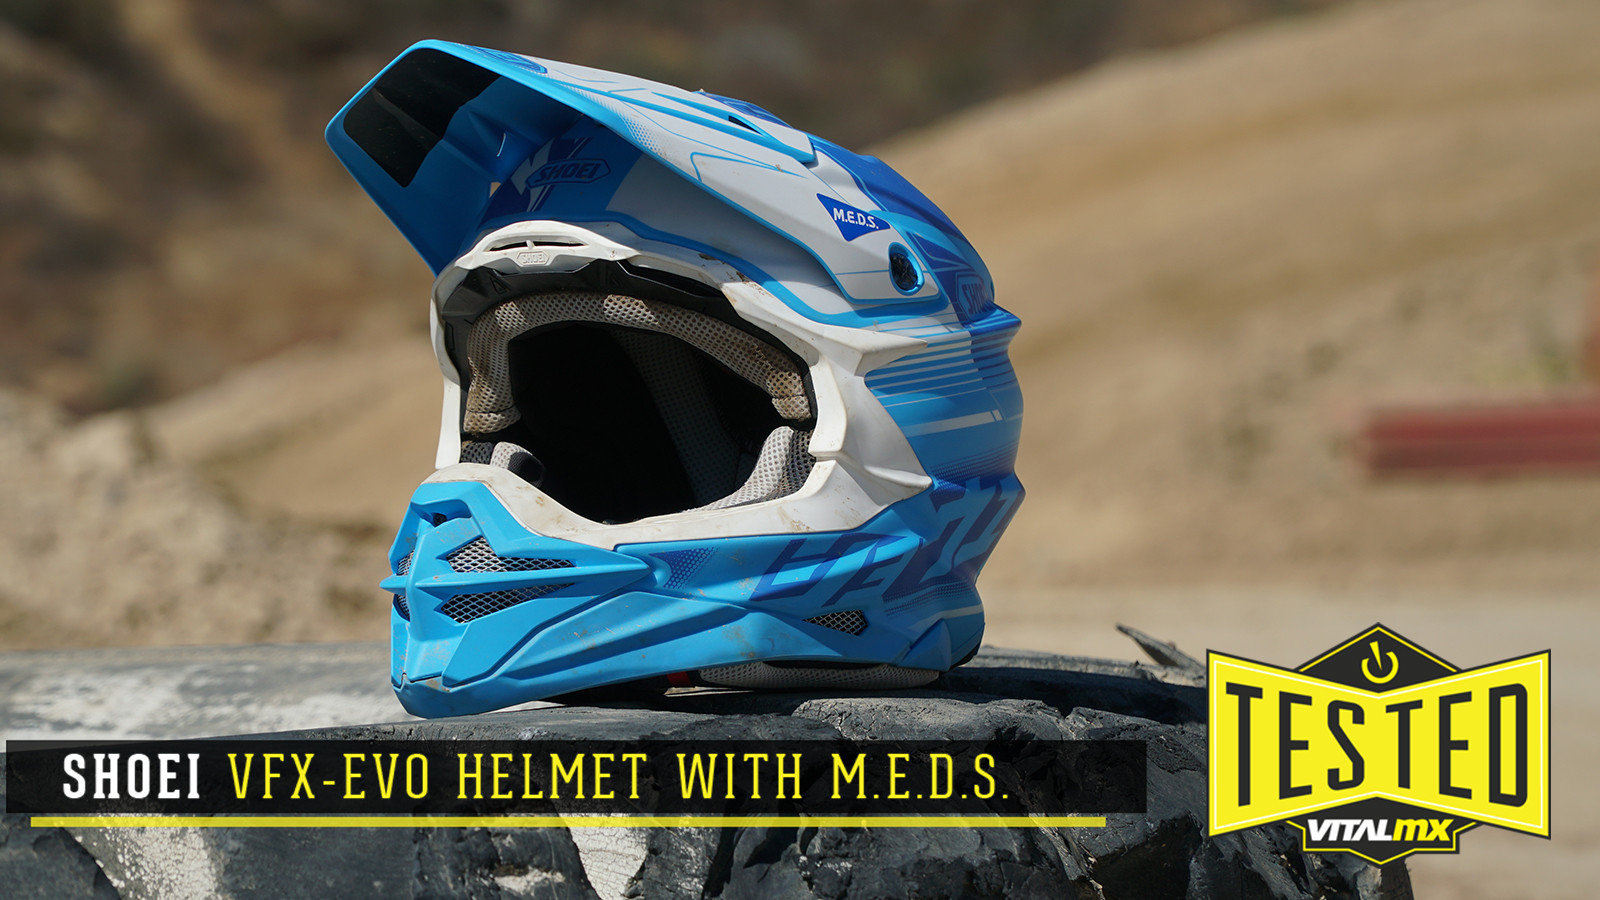 Tested: Shoei VFX-EVO Helmet